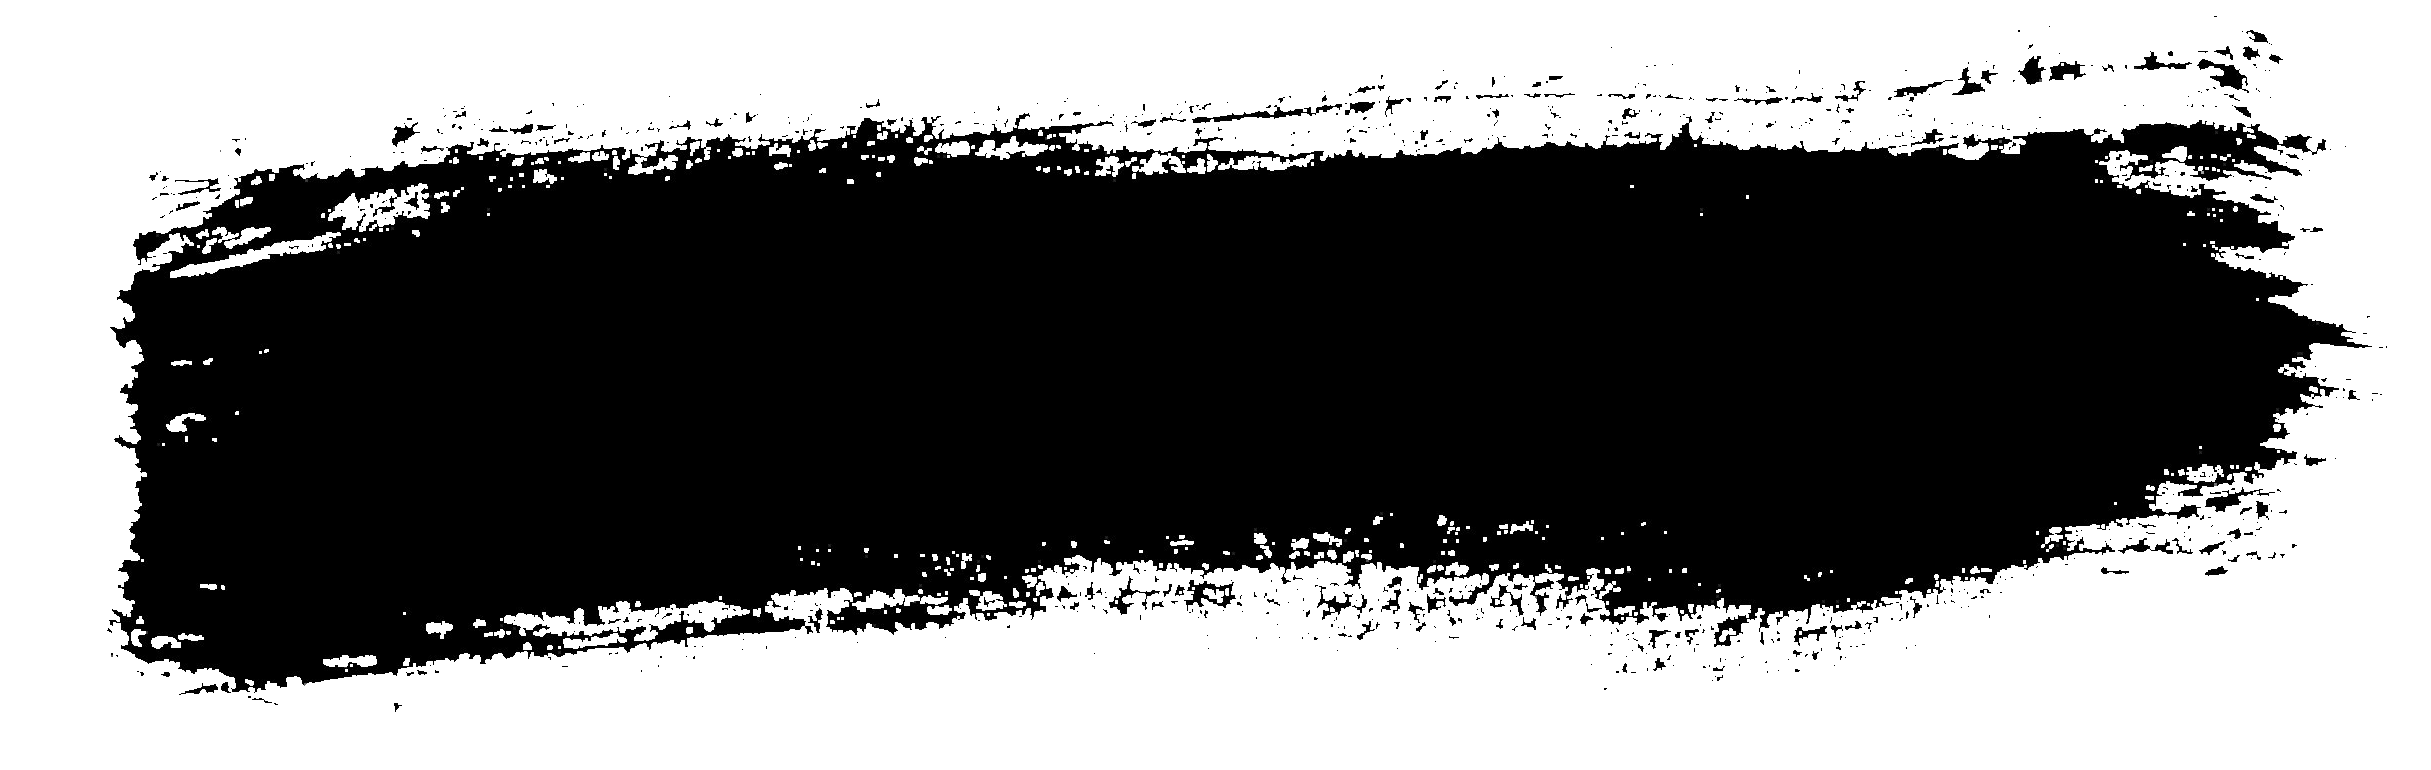 Best Brush Stroke Black Image